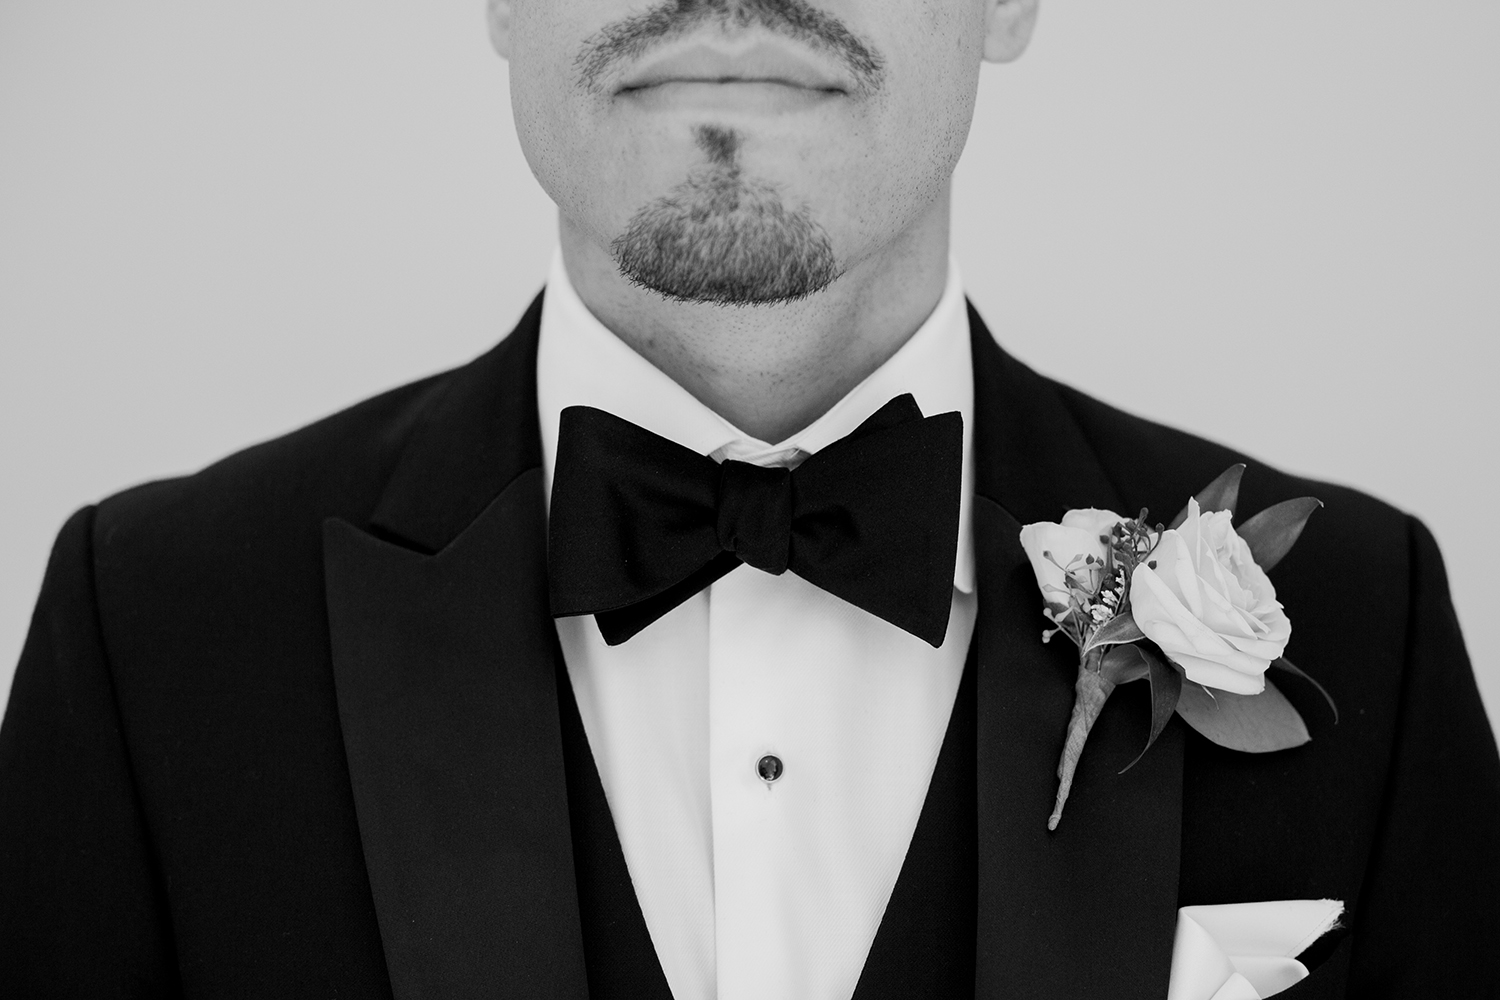 Suit, bowtie, and groom before walking down the aisle.